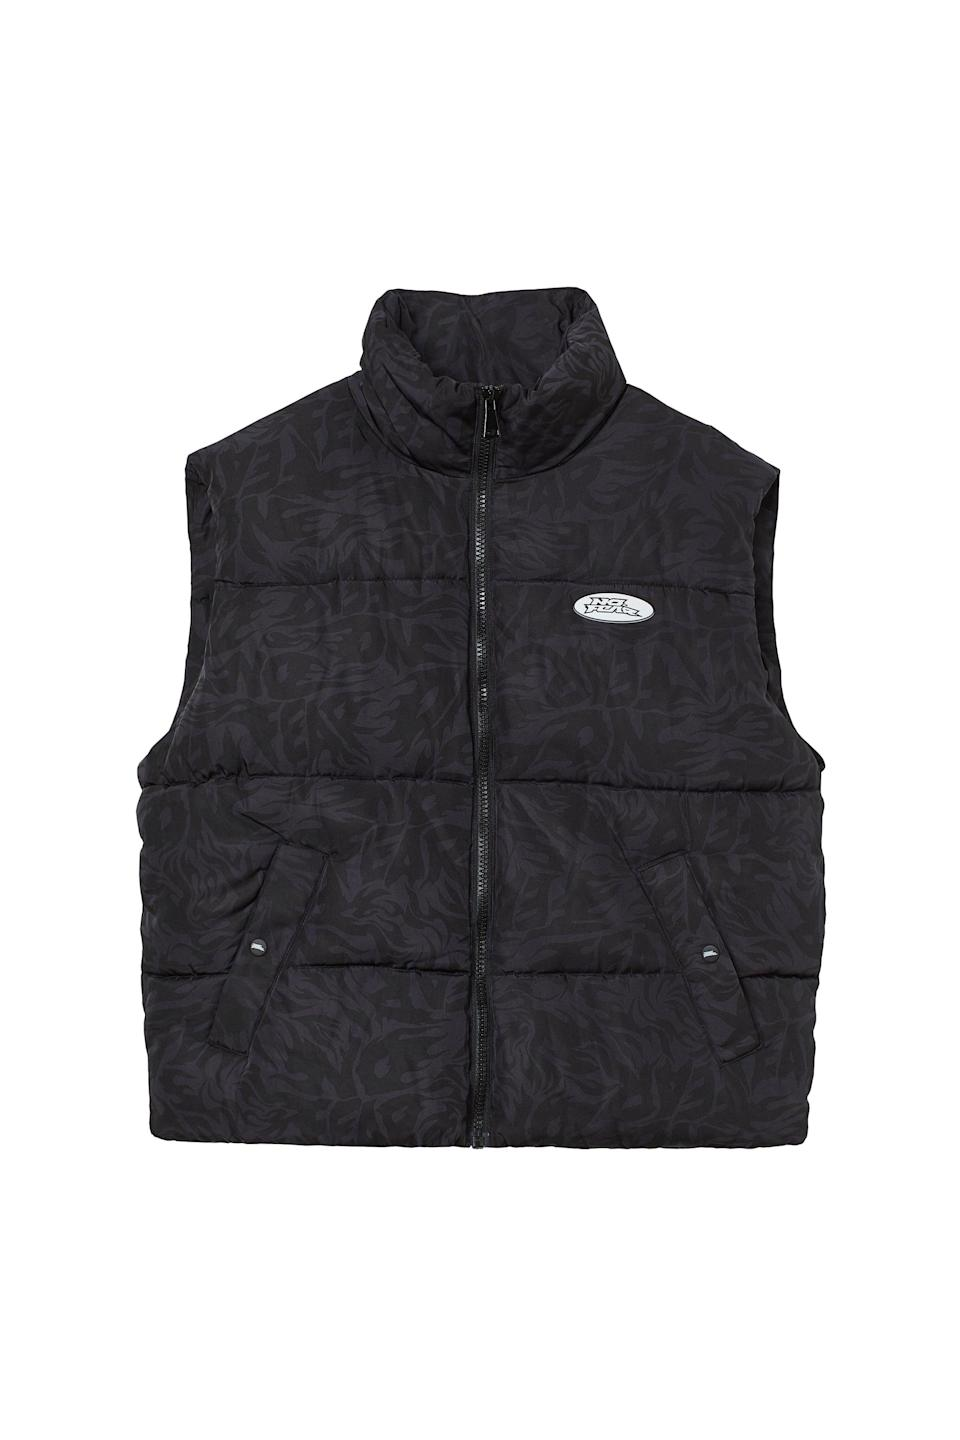 <p>This <span>No Fear x H&amp;M Puffer Vest</span> ($25) is perfect for fall. It's cozy and ideal for when the wind starts to pick up.</p>